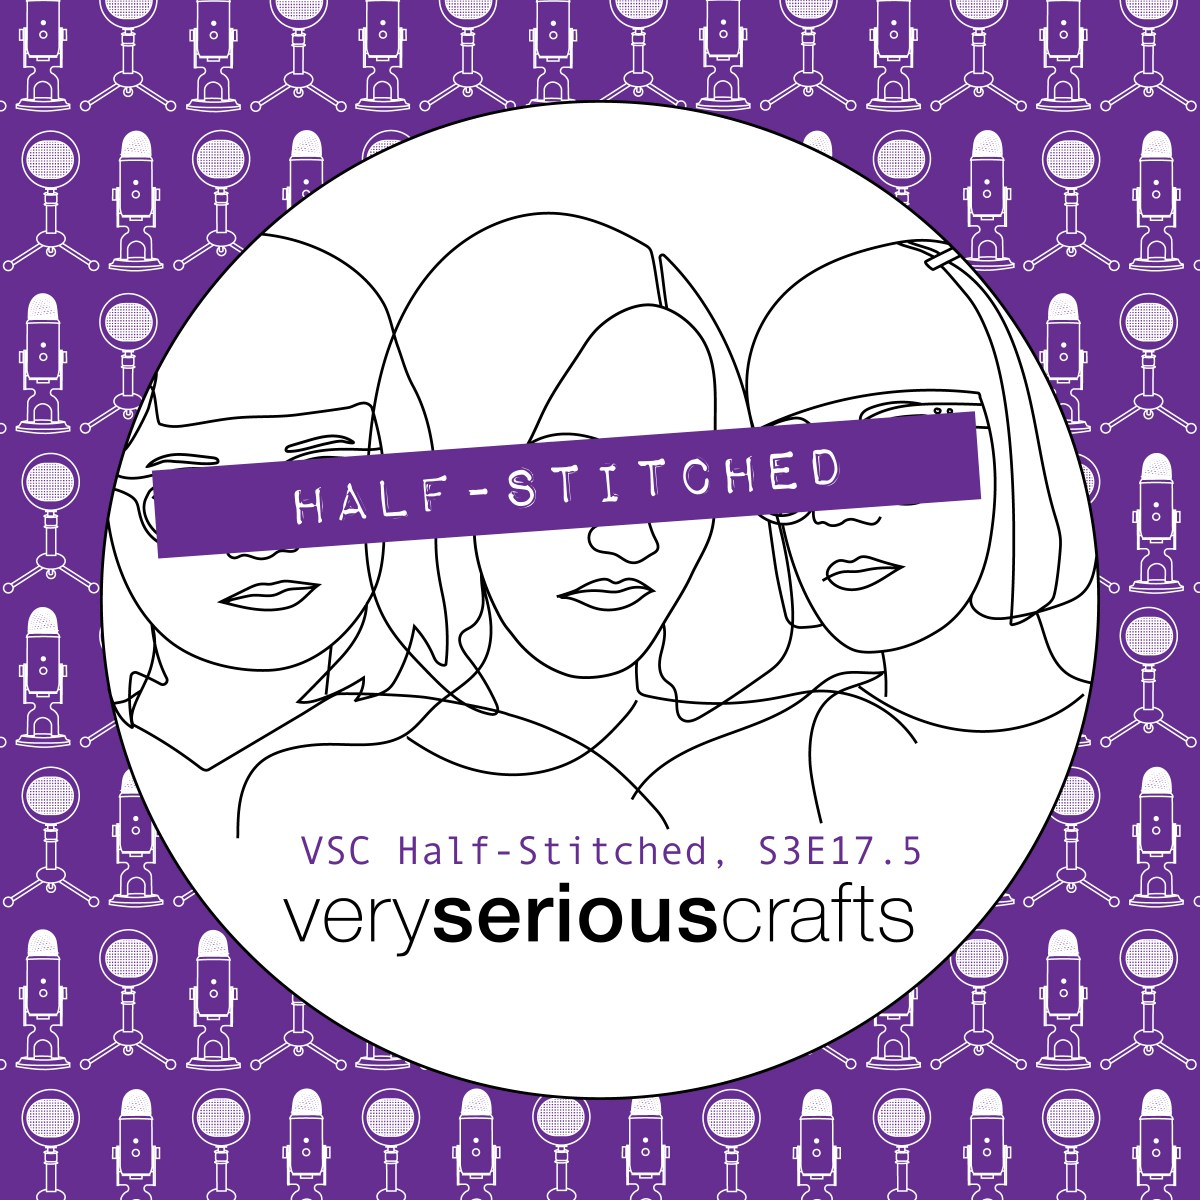 The Very Serious Crafts Podcast, Patreon Half-Stitched Episode S3E17.5